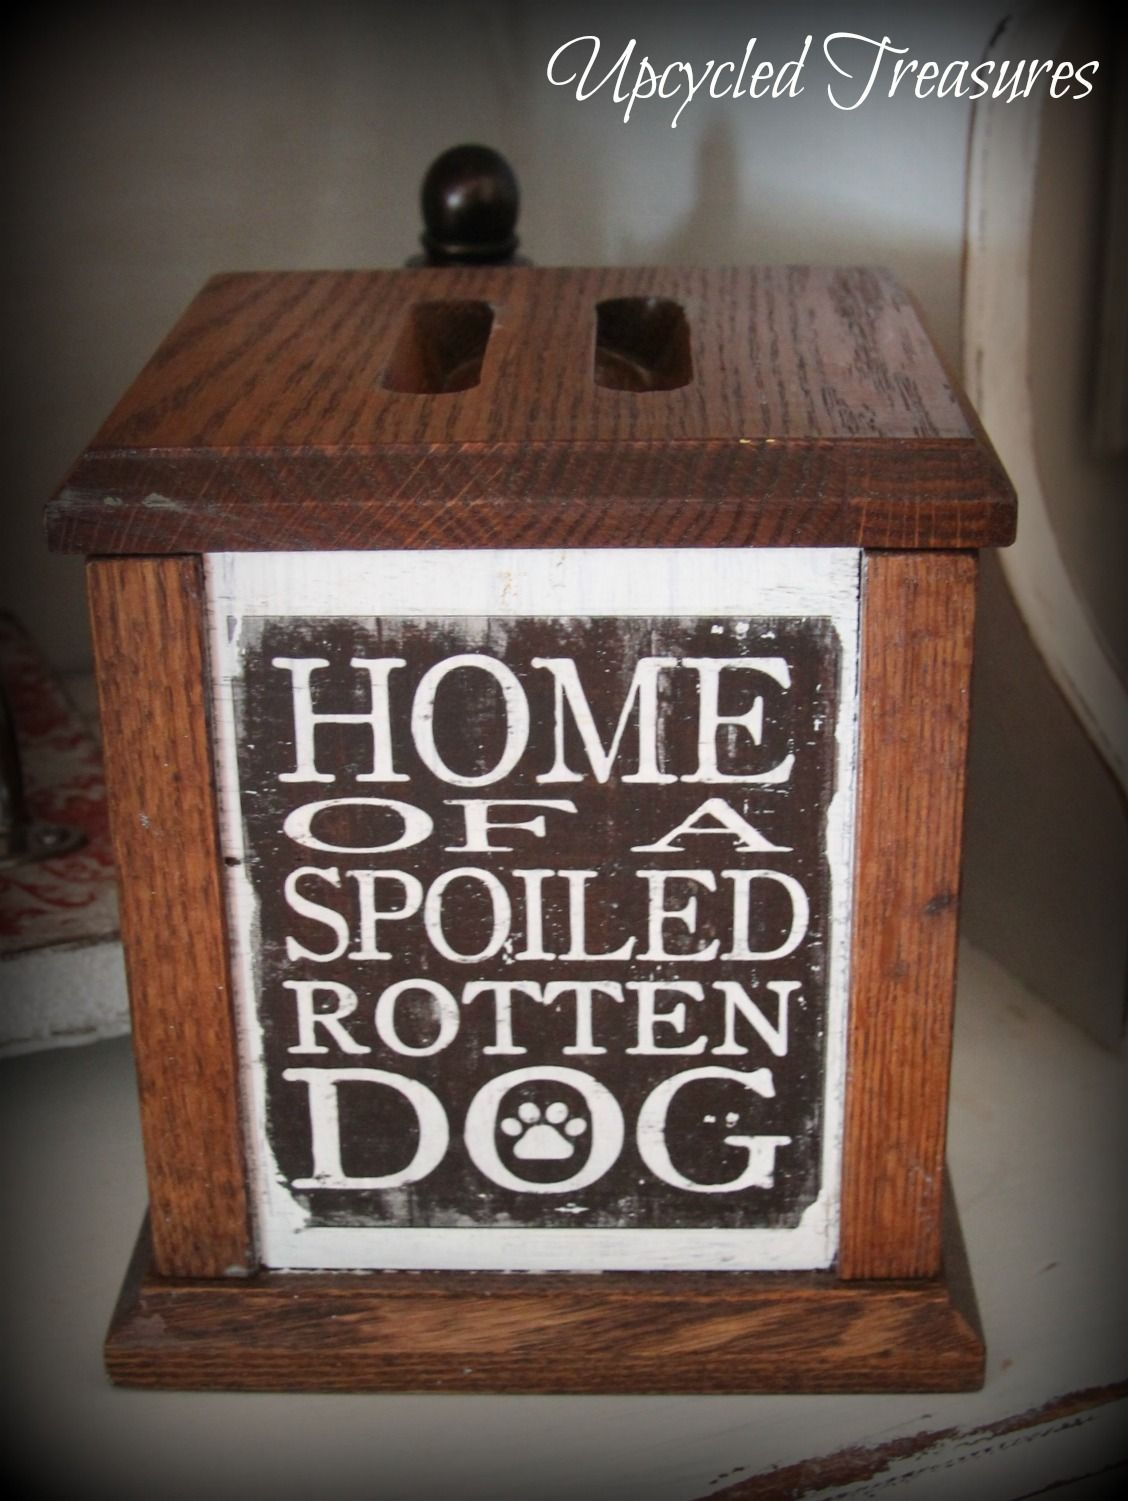 Vintage upcycled oak container turned into a pretty spot to keep dog treats #chalkpaint #repurposed https://www.facebook.com/Upcycled-Treasures-1403647943237665/?ref=hl